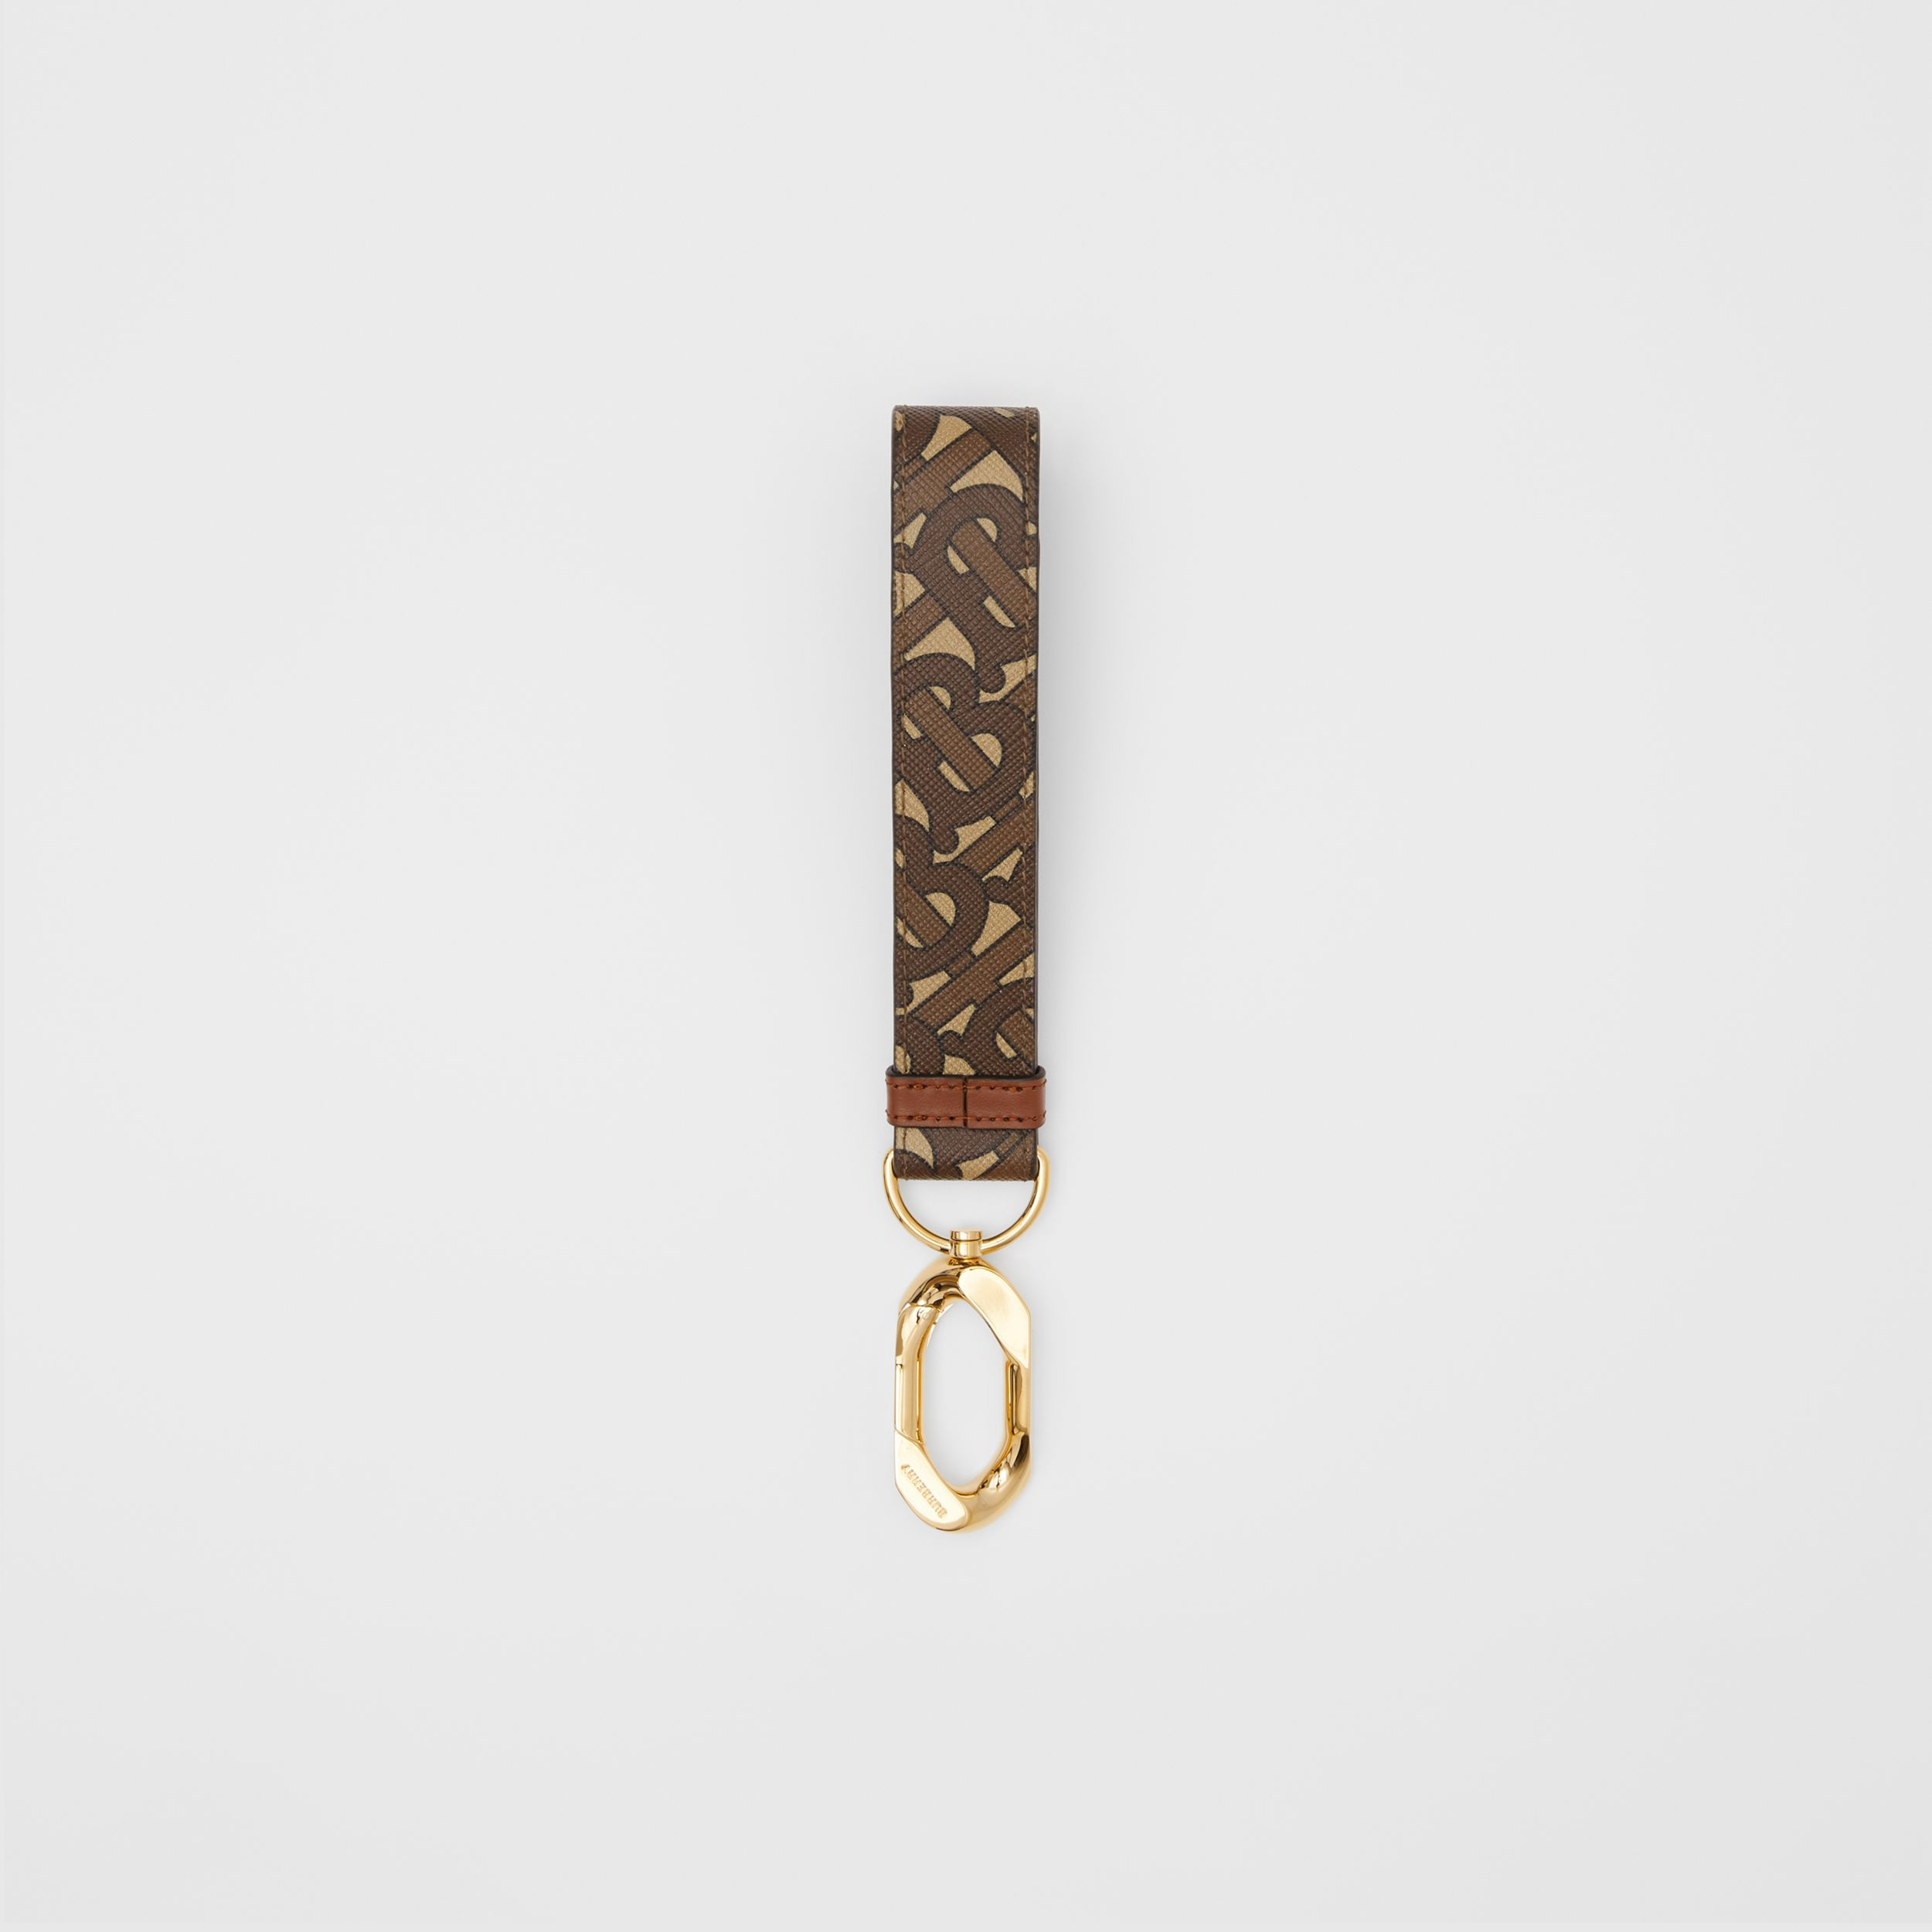 Monogram Print E-canvas Charm in Bridle Brown - Women | Burberry - 1